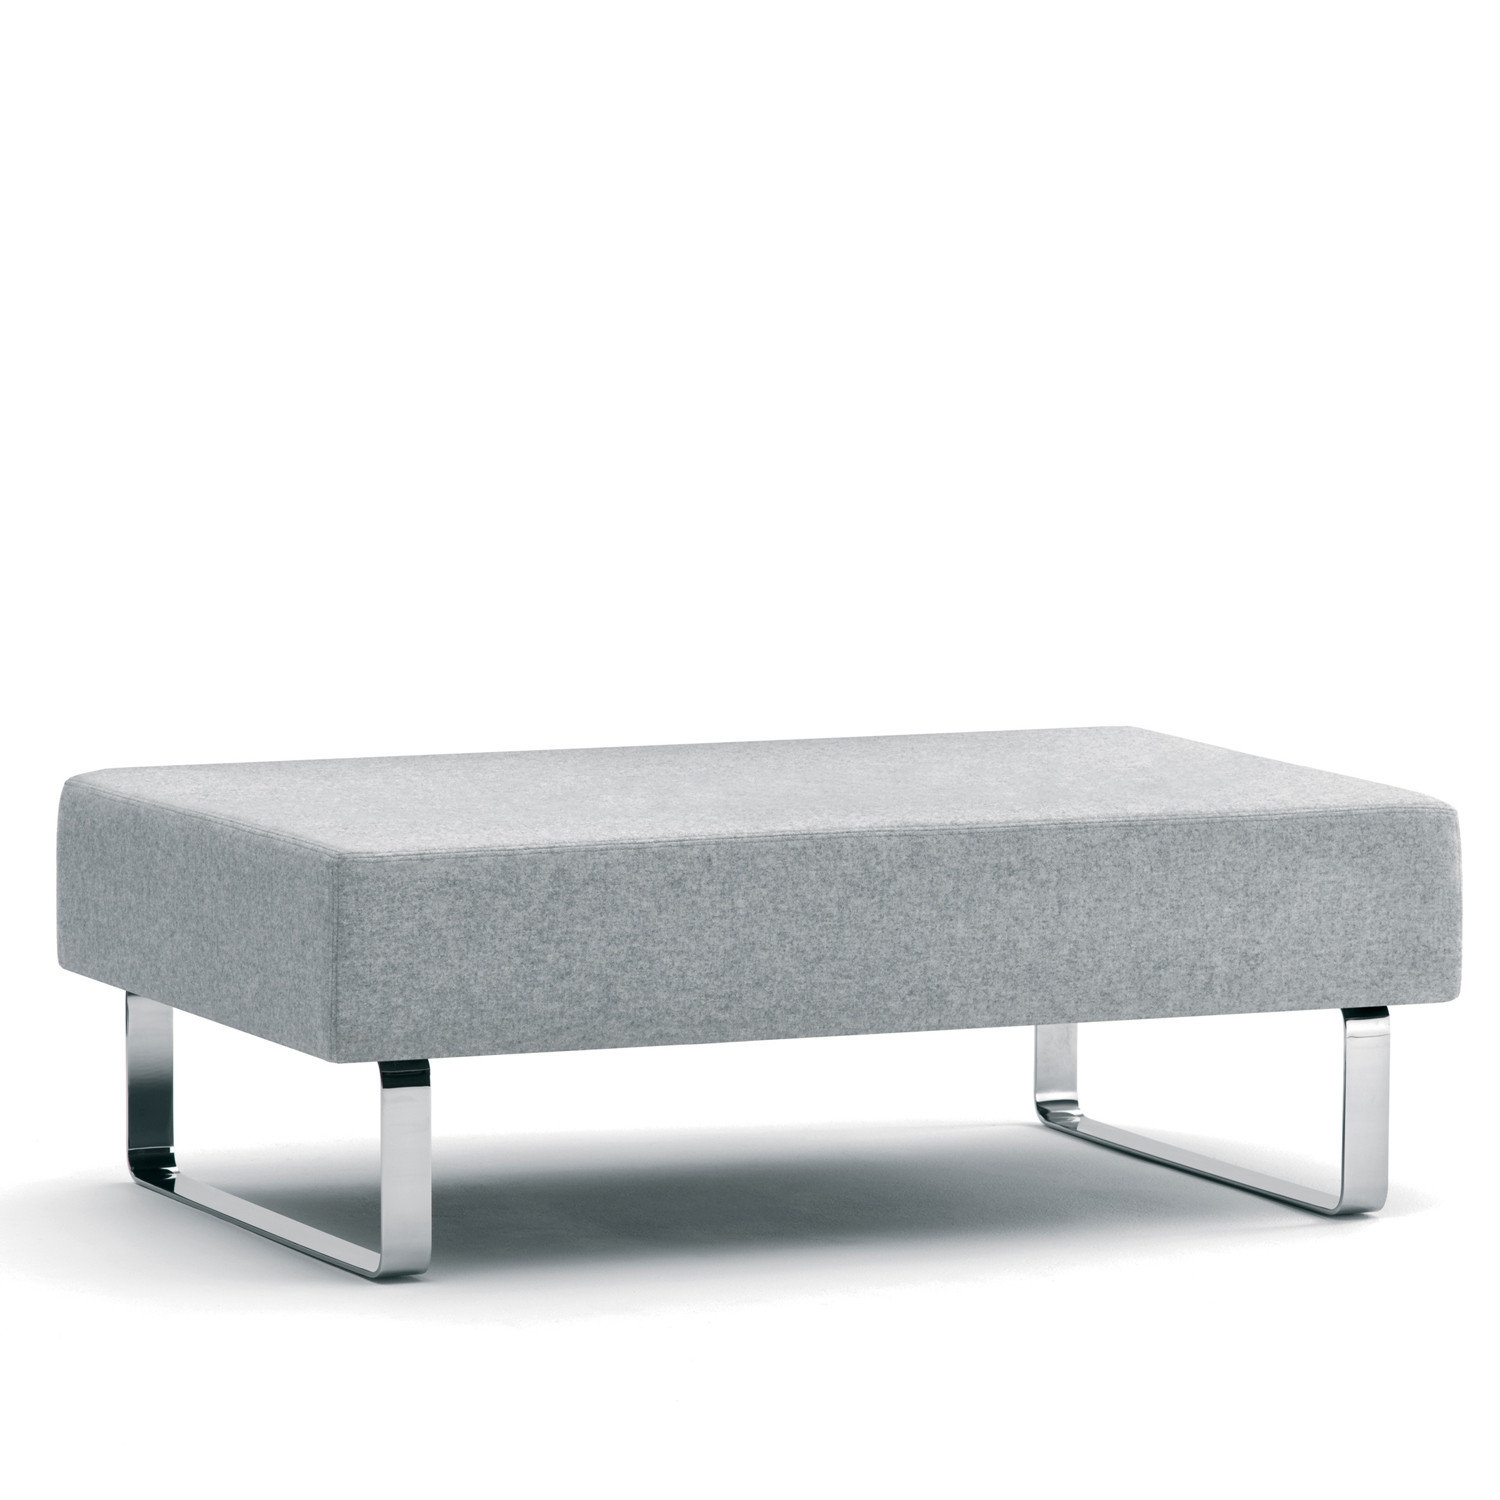 Intro Modular Bench Unit